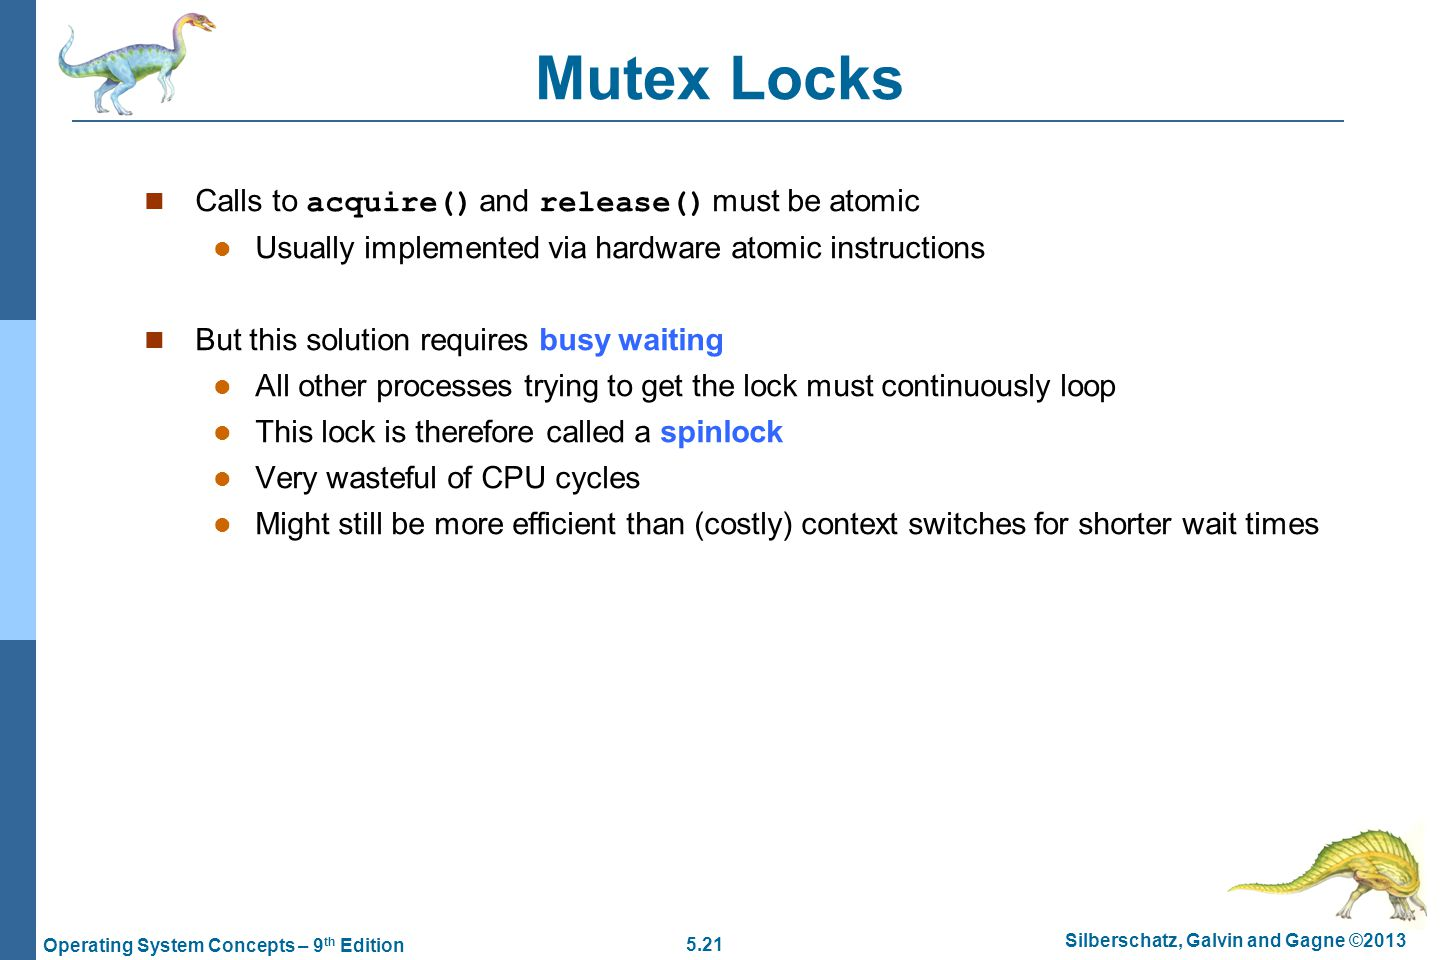 5.21 Silberschatz, Galvin and Gagne ©2013 Operating System Concepts – 9 th Edition Mutex Locks Calls to acquire() and release() must be atomic Usually implemented via hardware atomic instructions But this solution requires busy waiting All other processes trying to get the lock must continuously loop This lock is therefore called a spinlock Very wasteful of CPU cycles Might still be more efficient than (costly) context switches for shorter wait times